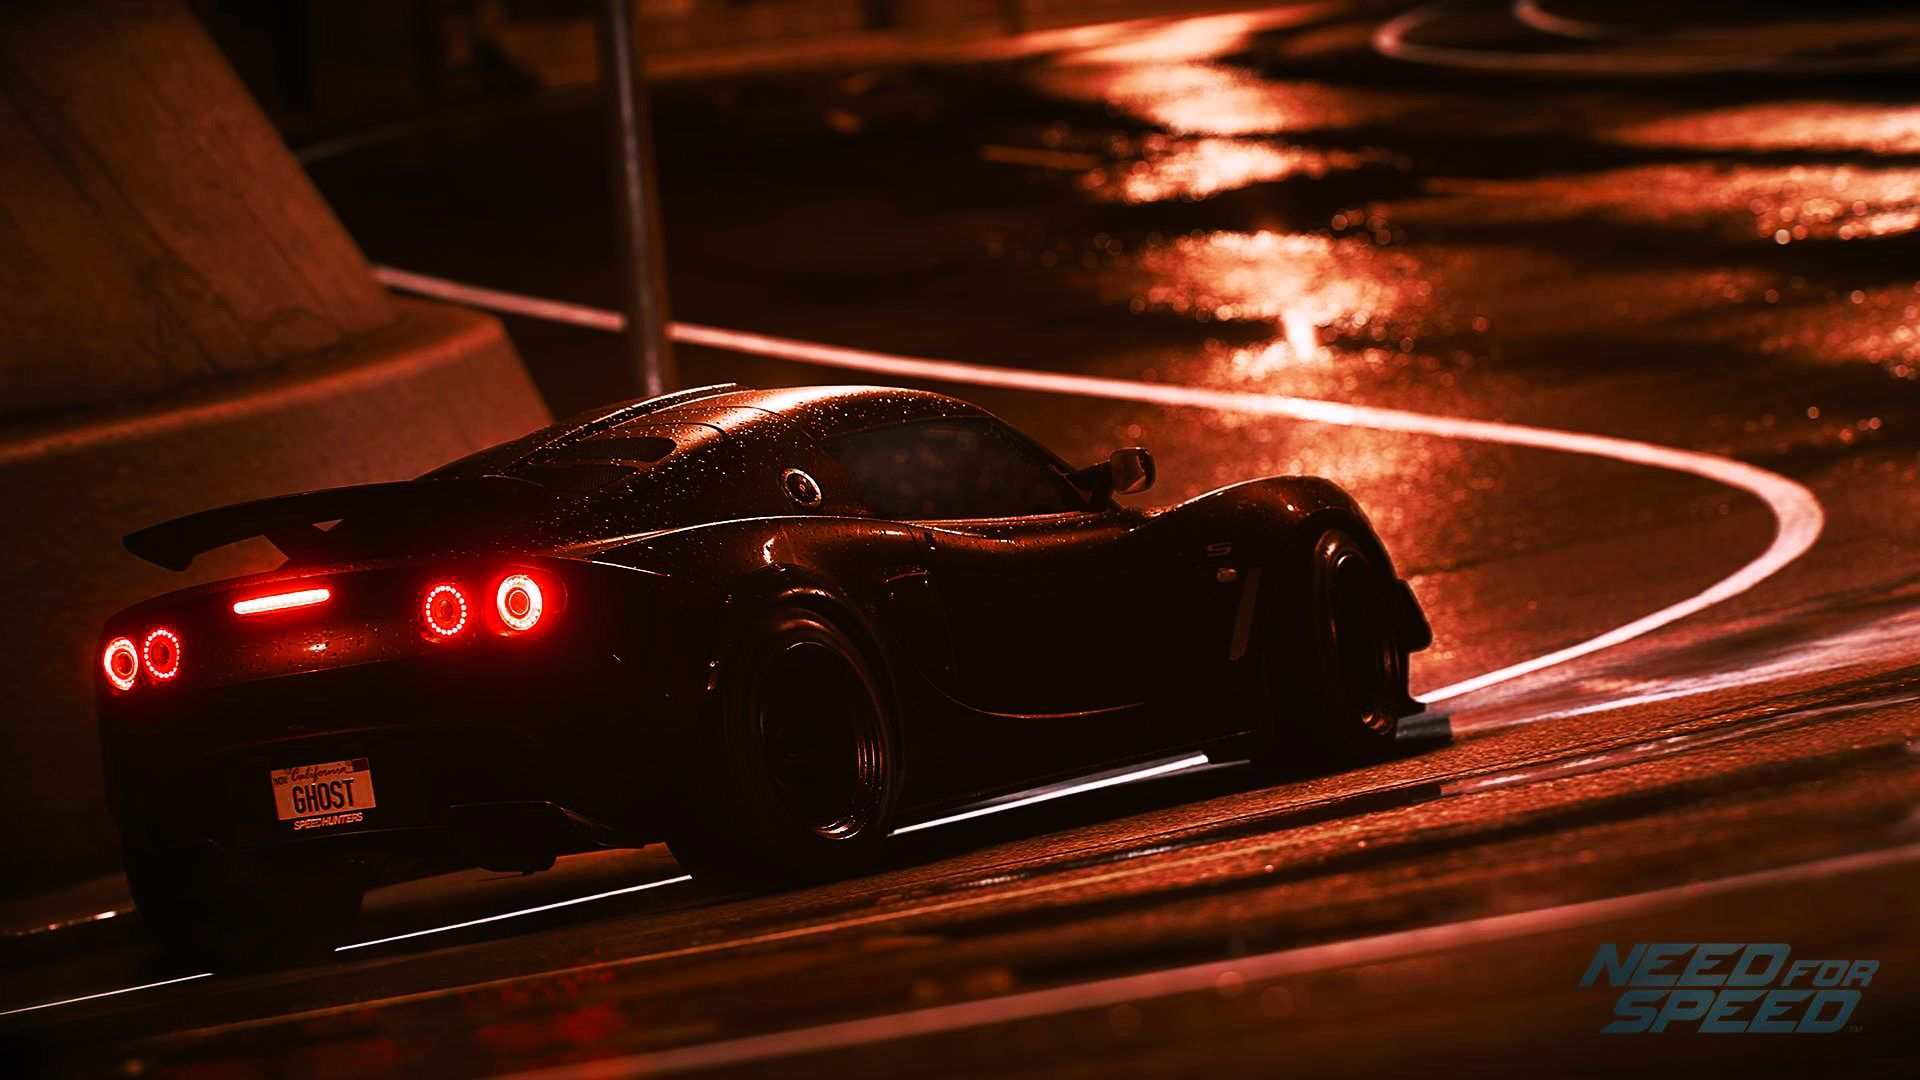 High Resolution Wallpapers Need For Speed 2015 Picture 1920x1080